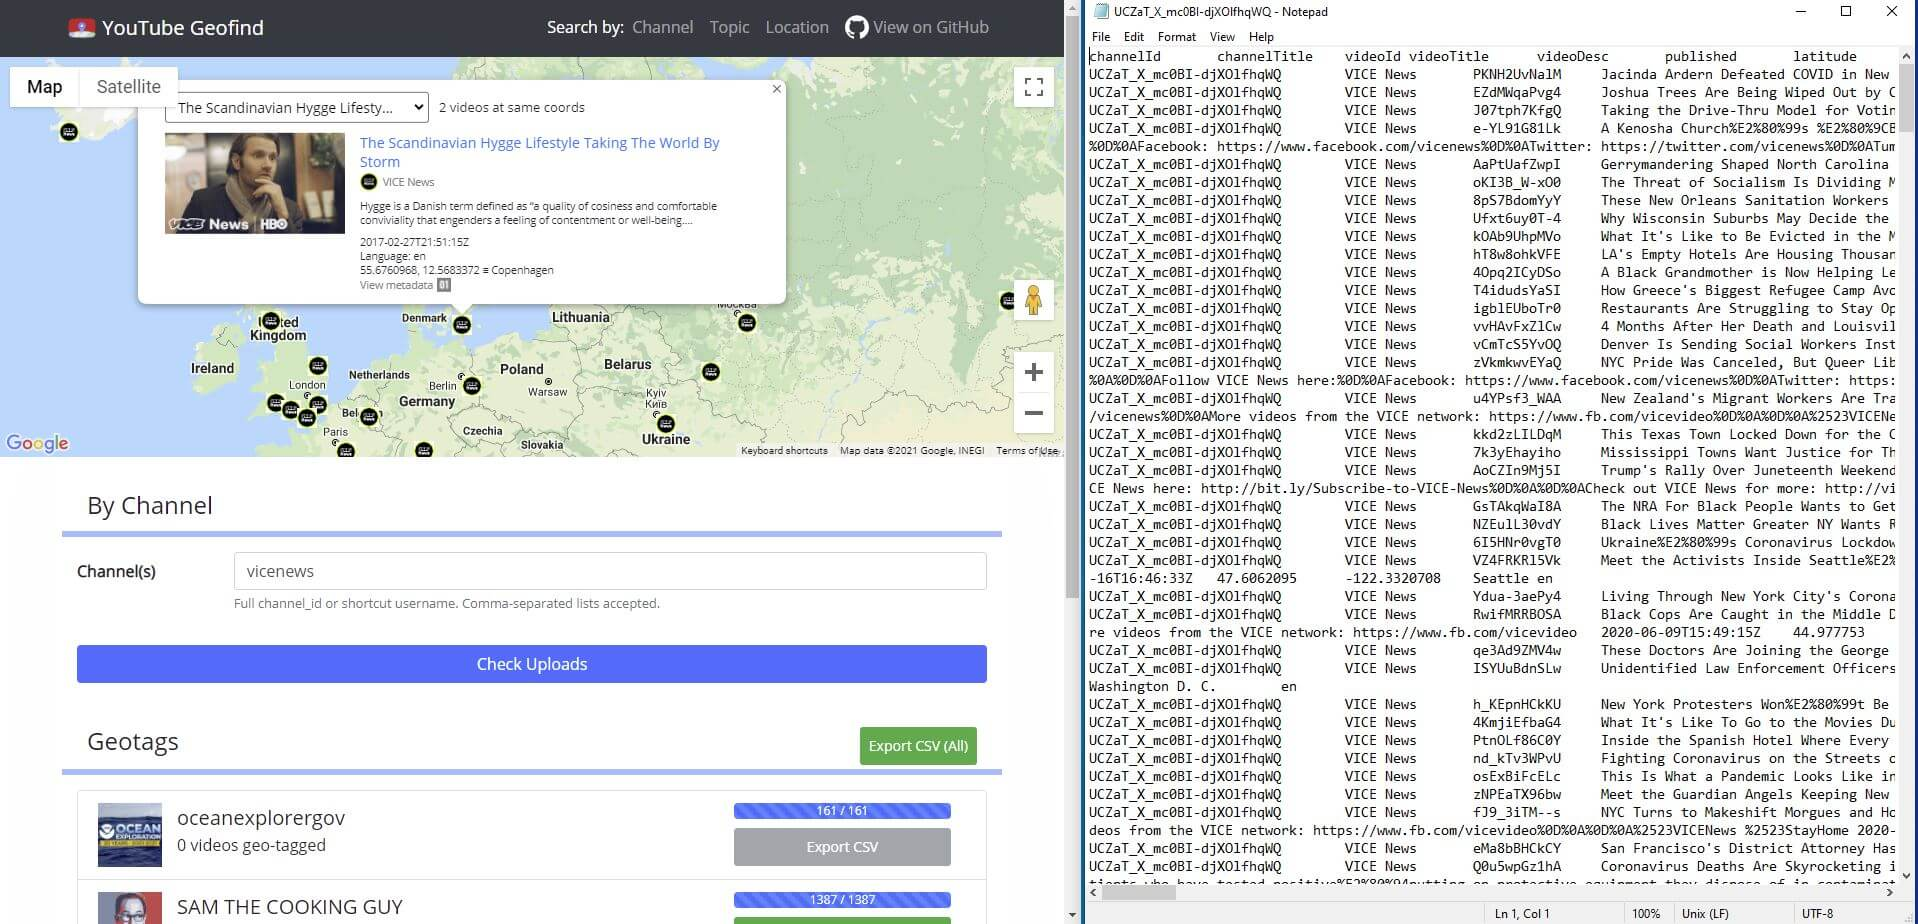 Analysing YouTube geolocation data with 'YouTube Geolocation'